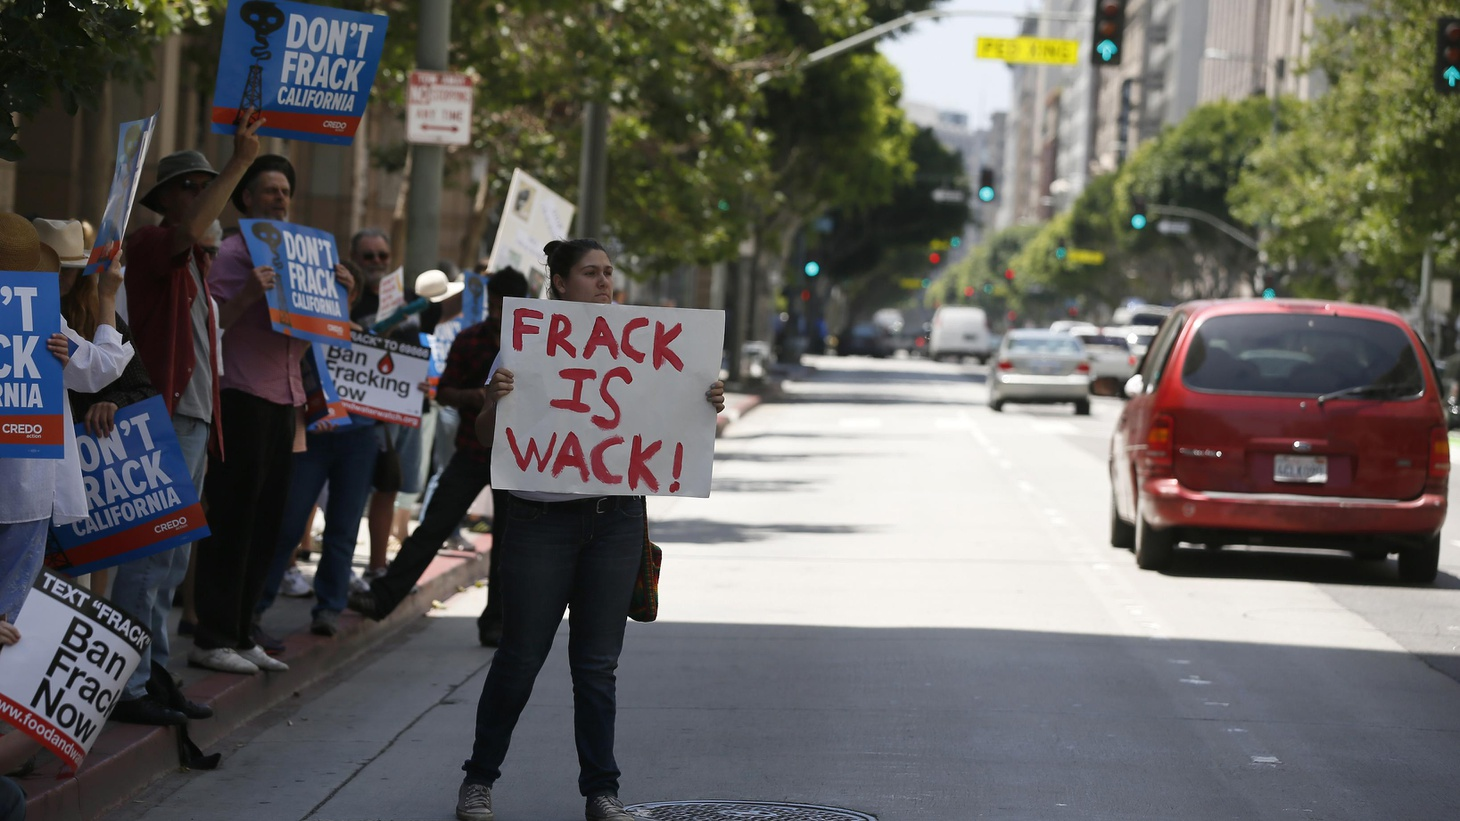 New oil extraction techniques may open the massive Monterey Shale Formation, creating another oil boom. Will the jobs and the money be worth the consequences of fracking?